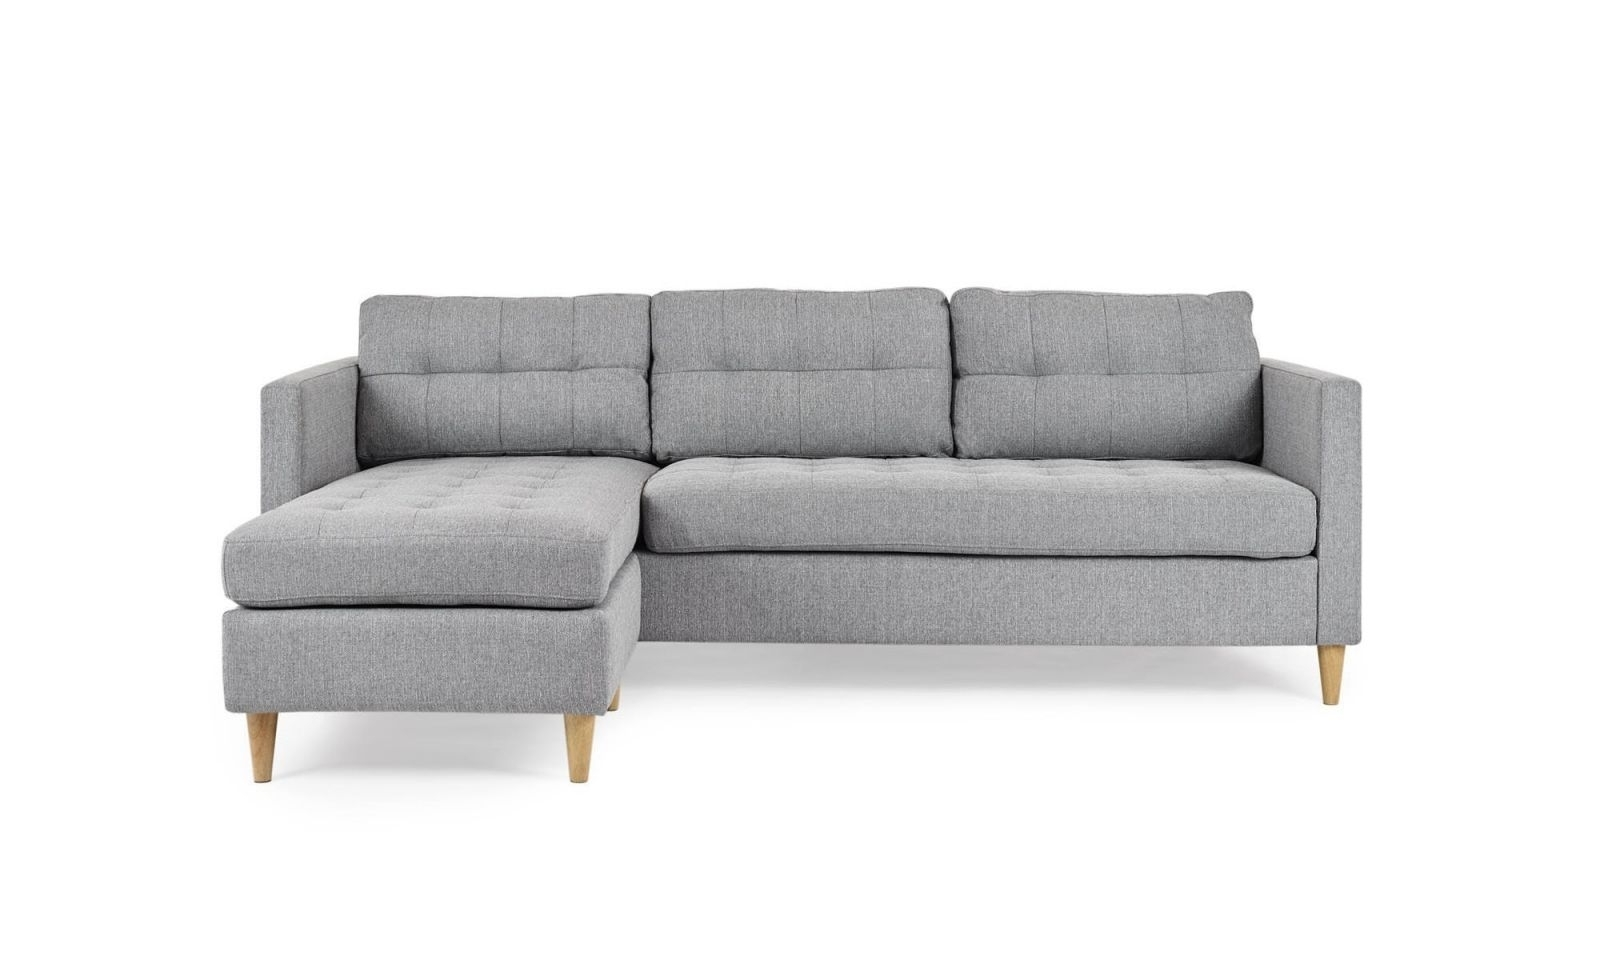 Gray Chaise Sofas Throughout Newest Chaise Corner Sofas #3 Alexis Interchangeable Reversible Chaise (View 5 of 15)